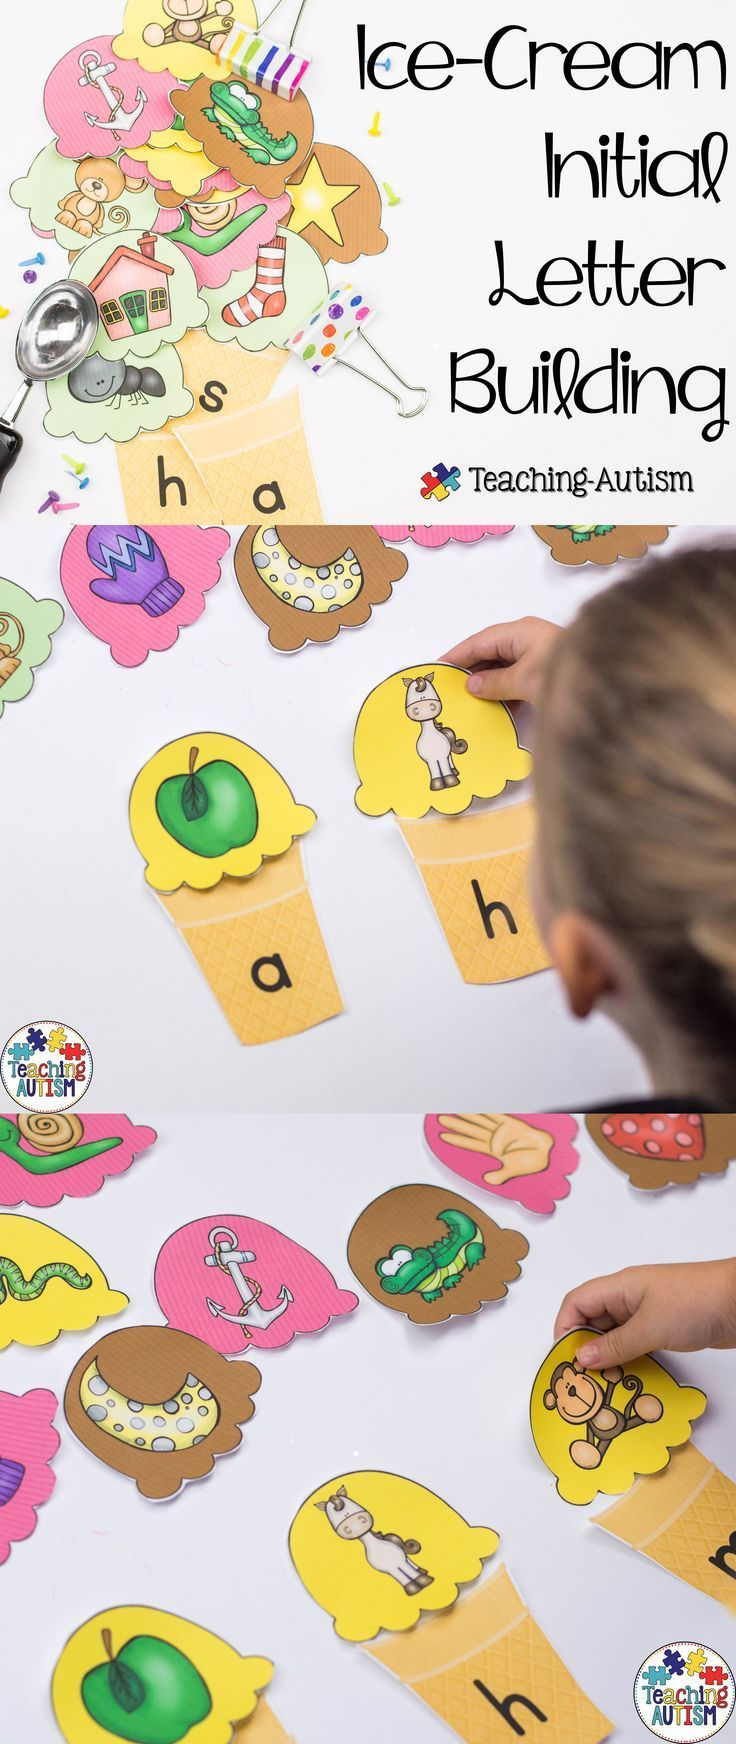 This resource is perfect for any time of the year, but especially Summer time!   Students have to sort the 'scoops of ice cream' into the correct cones - matching images to their initial letter (items that begin with a,b etc).  There are cones for every l